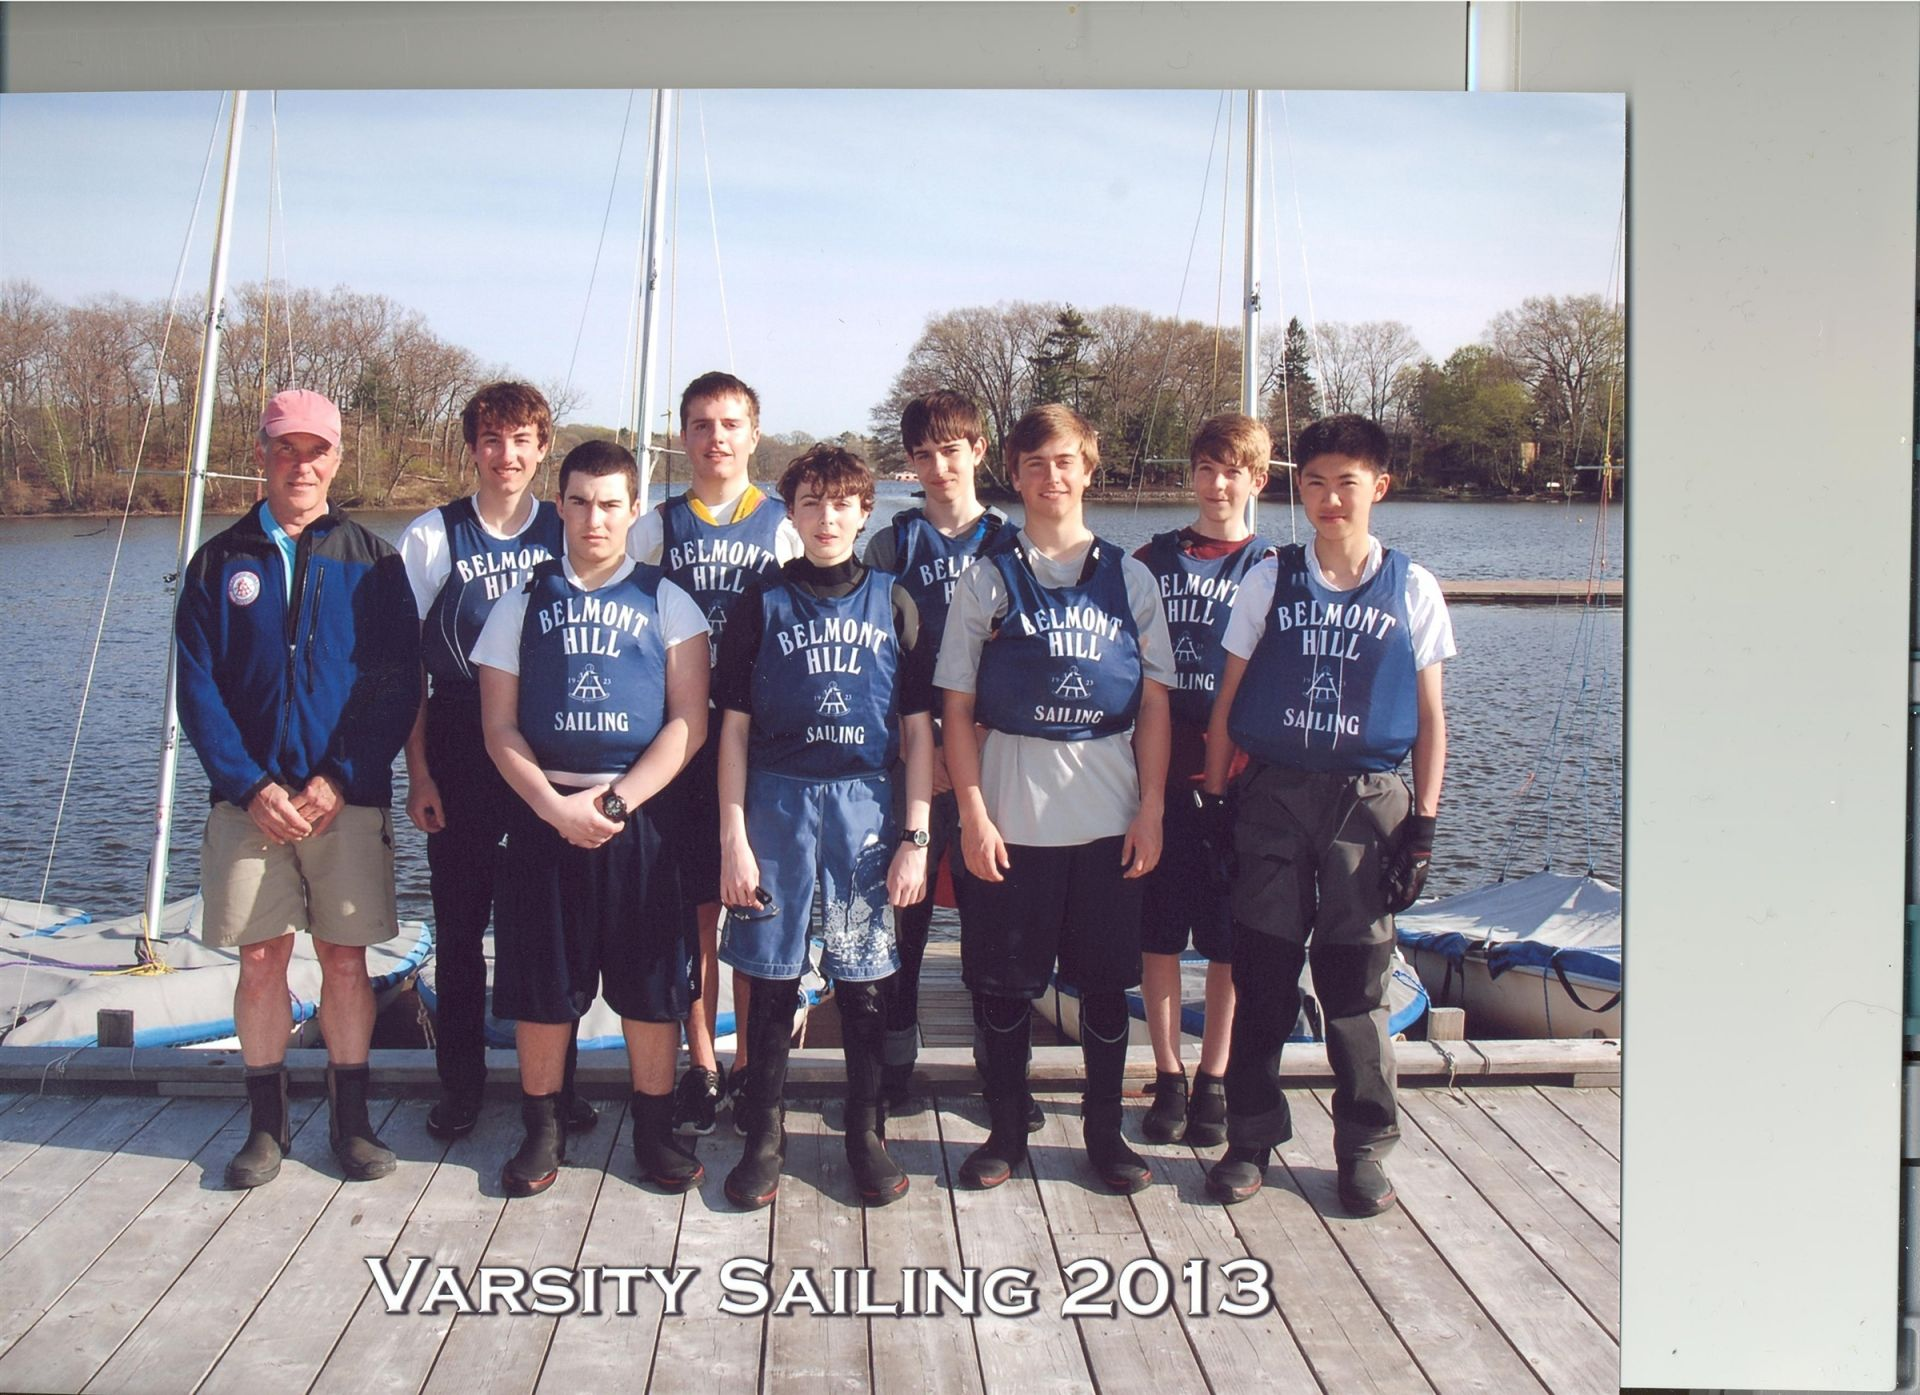 L-R Coach Zamore, Chris Ciampa, Co-Capt. Max Rudzinsky, Alex Themelis, Tomas Paris, Lucas Jurgensen, James Collins, Jacob Whitney, Spencer Kim, Missing: Bernardo Pacinin- Co-Capt